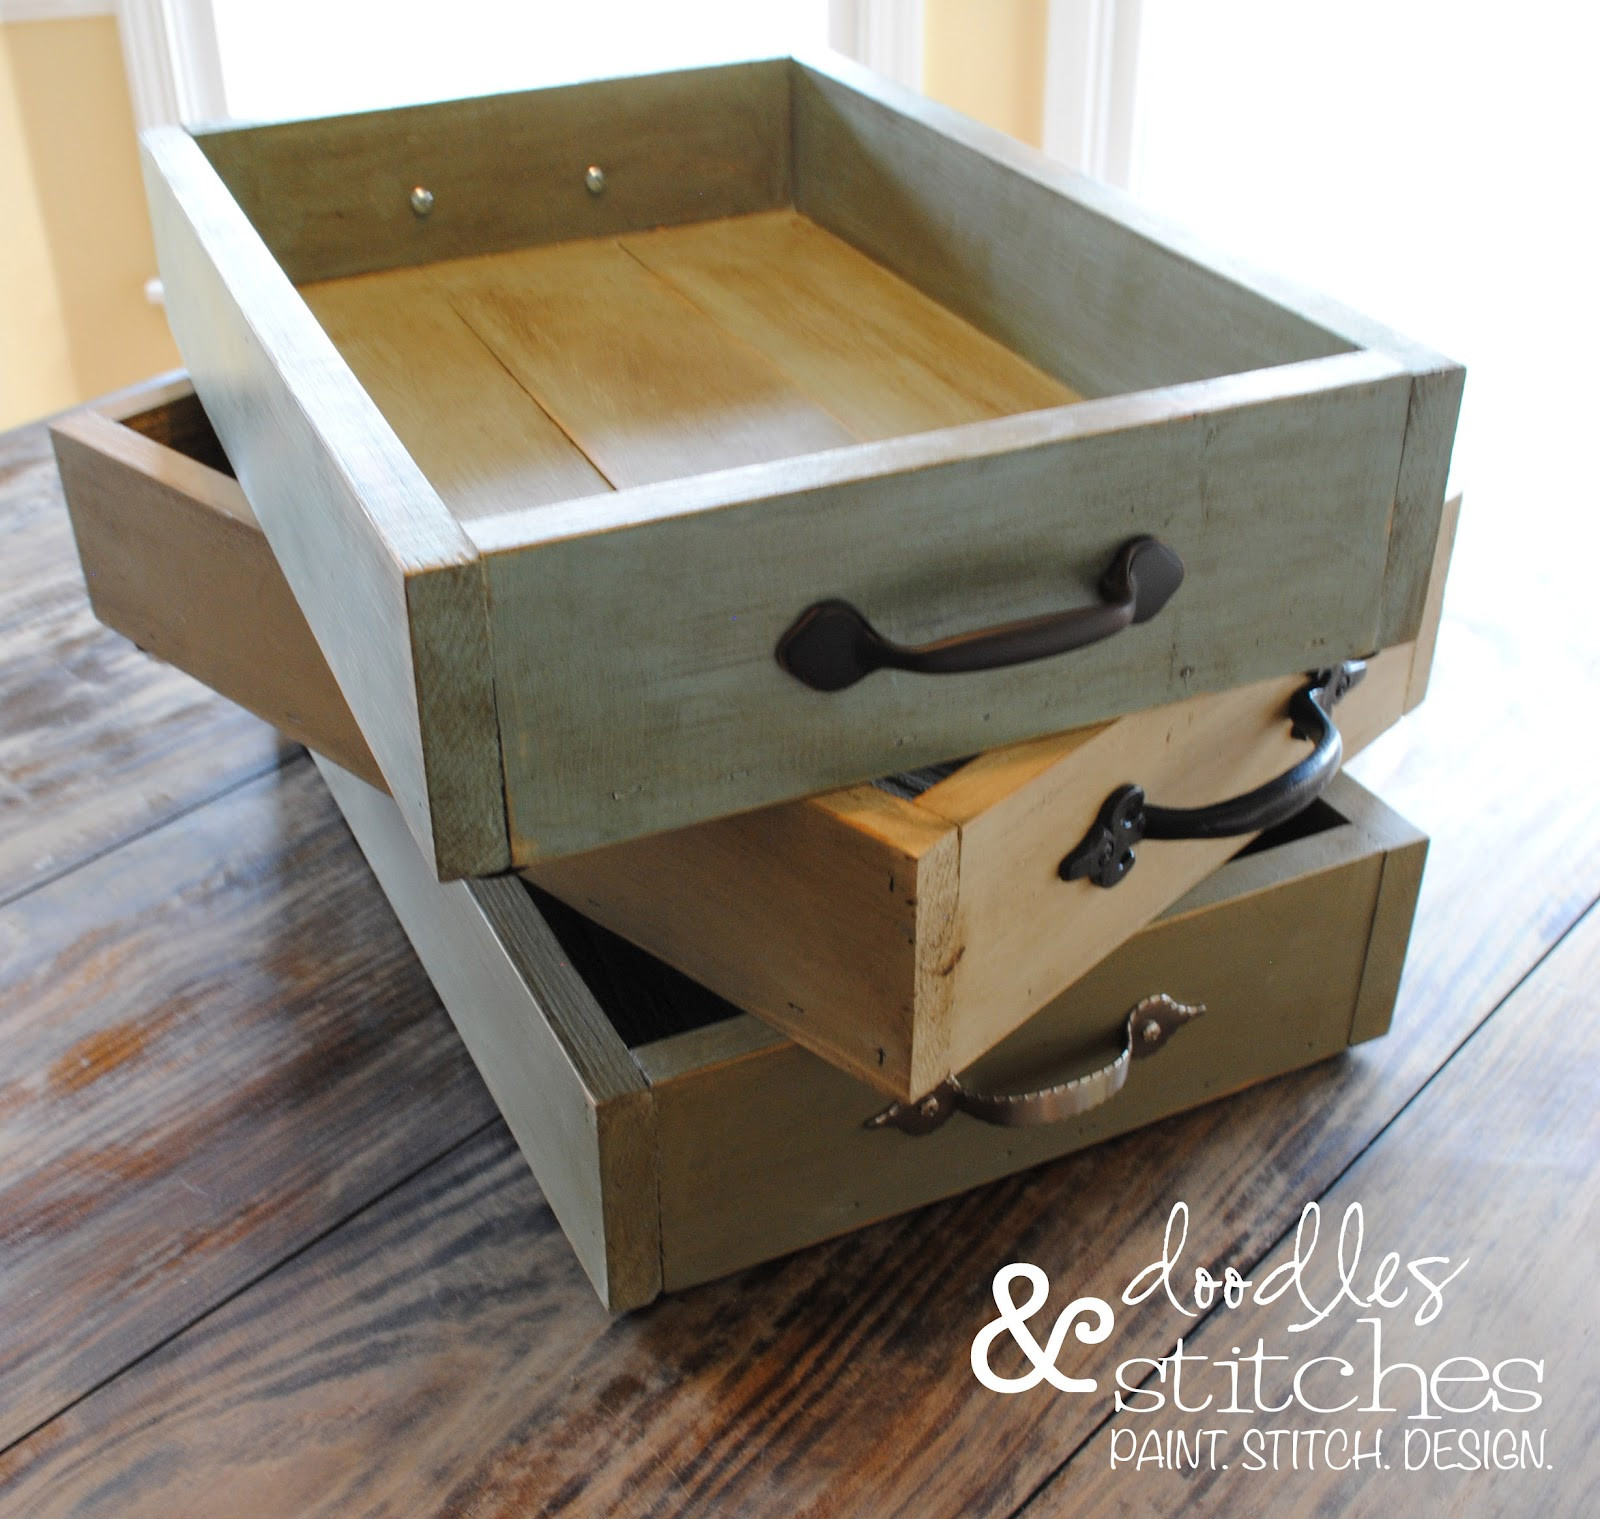 Best ideas about DIY Wood Trays . Save or Pin Doodles & Stitches DIY Wooden Casserole Tray Now.